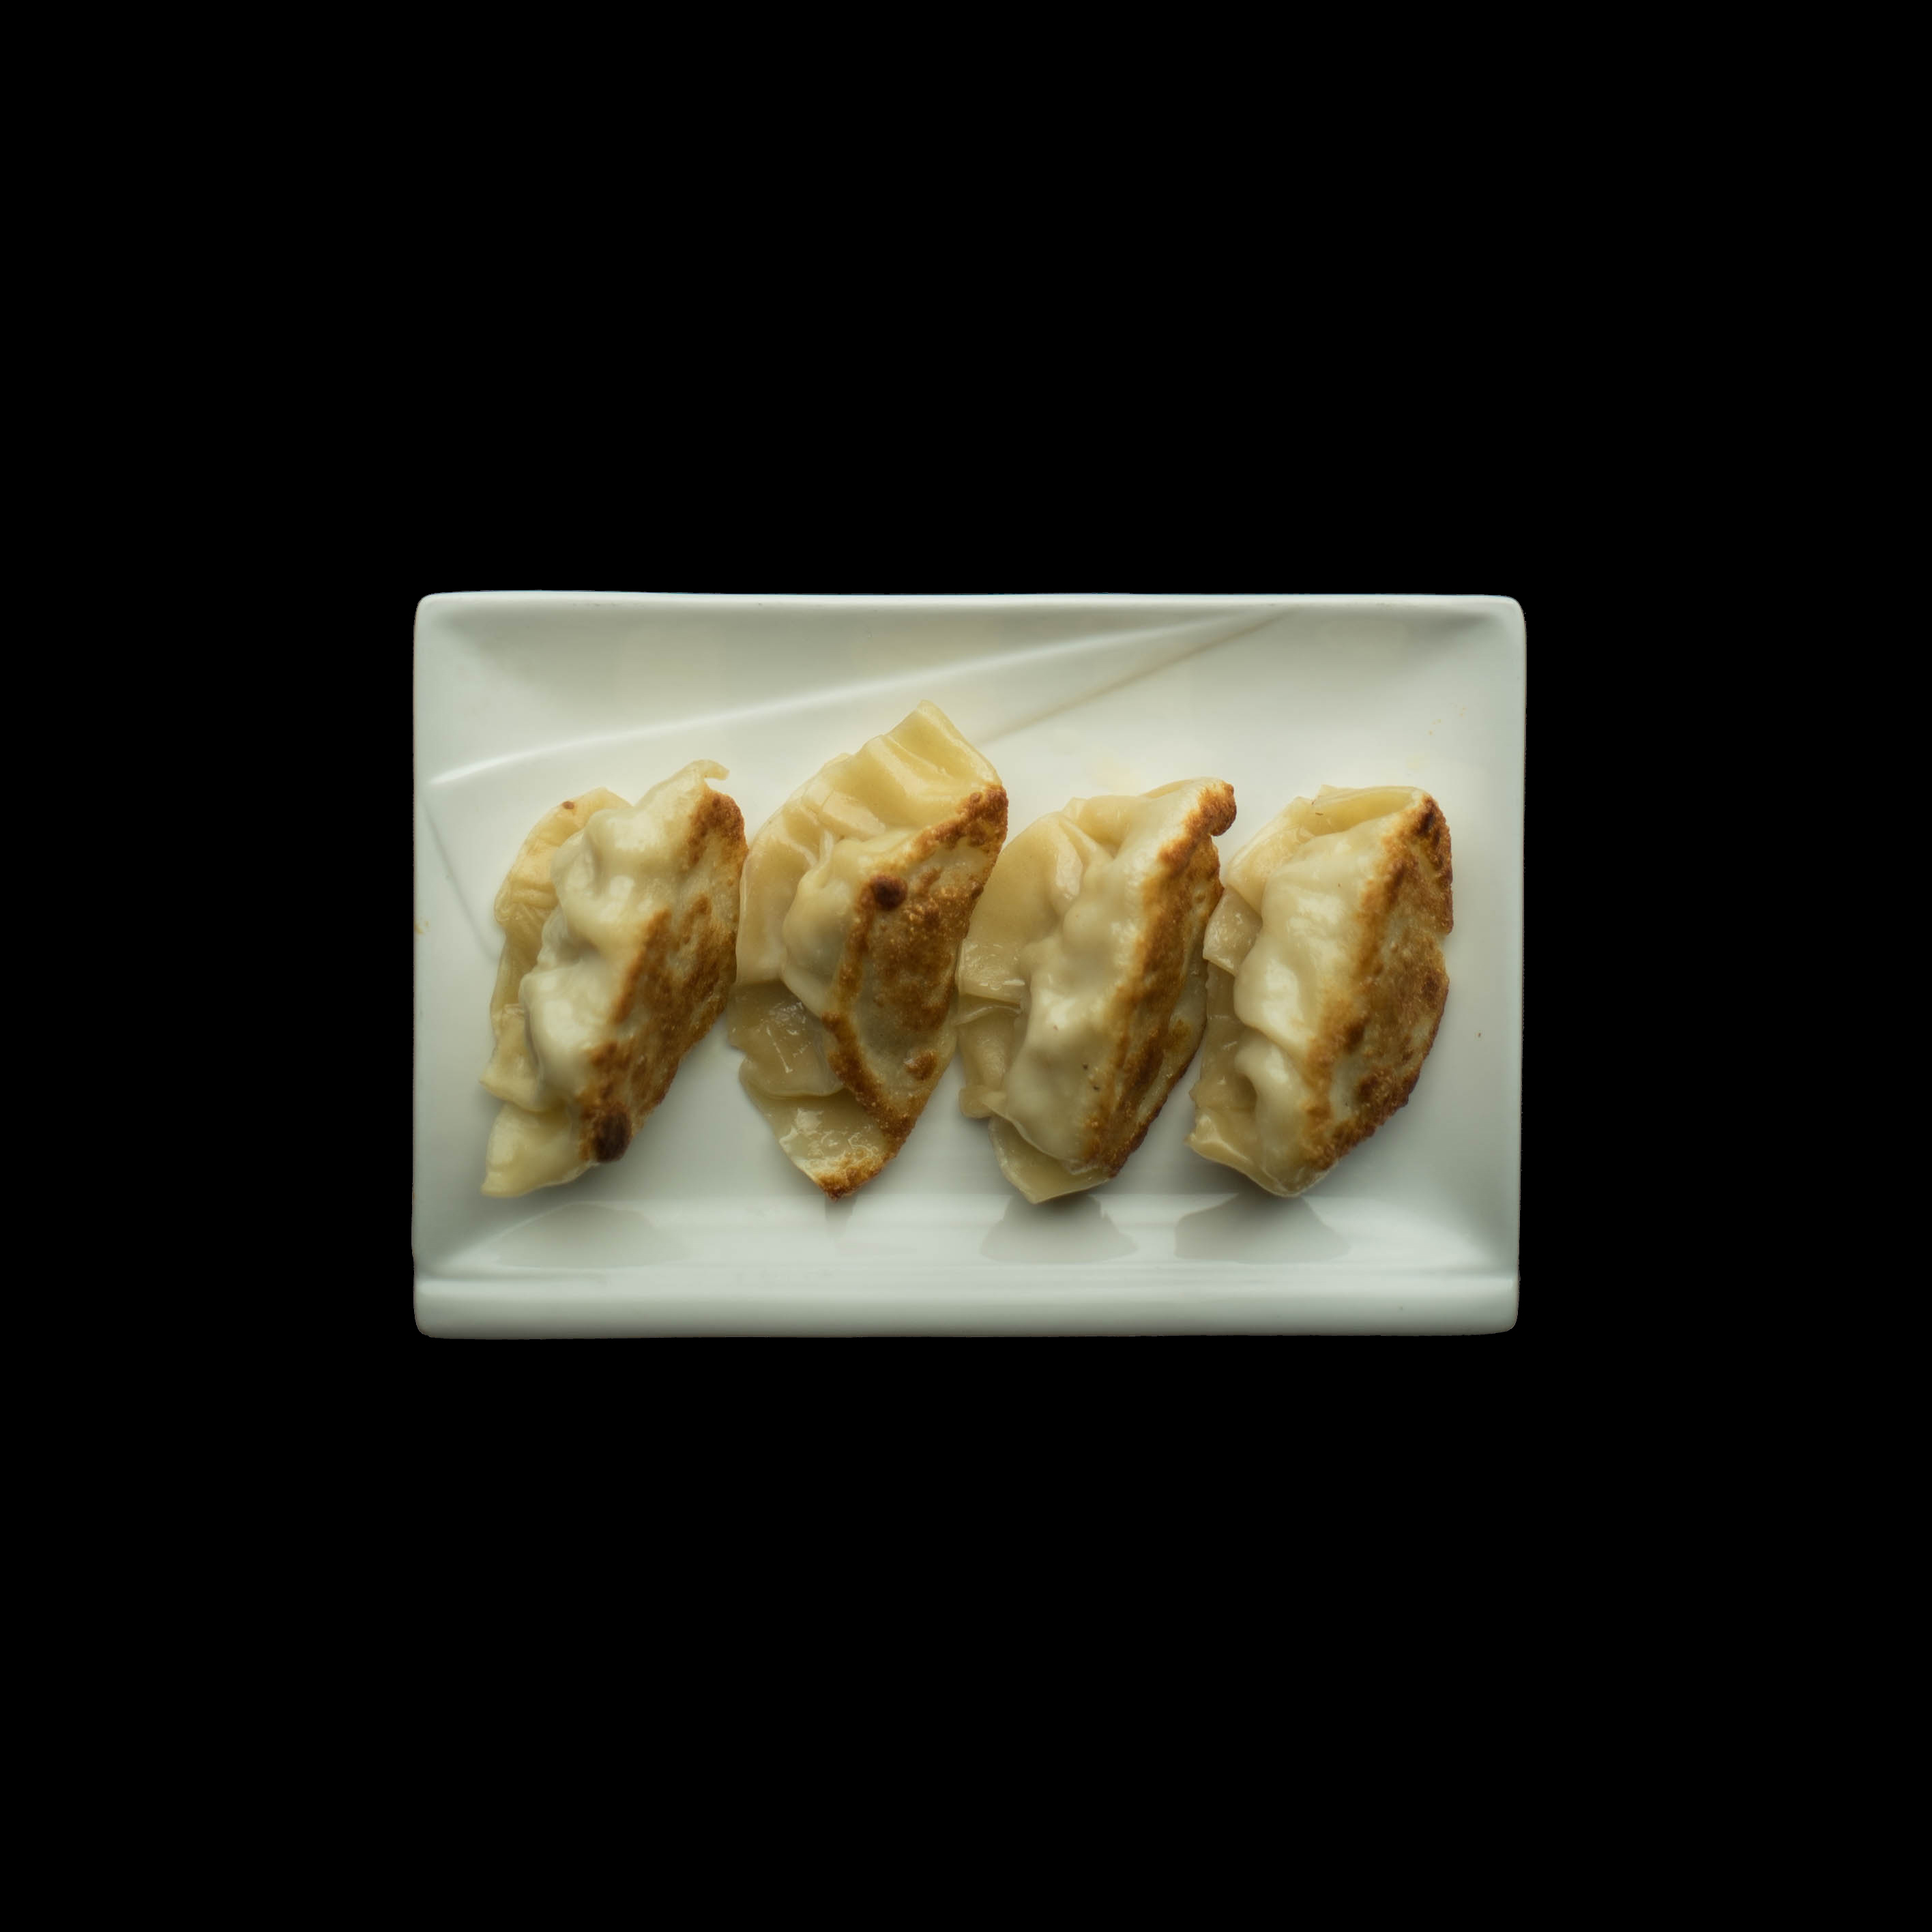 39. 生煎锅贴 Pan Fried Pot Stickers